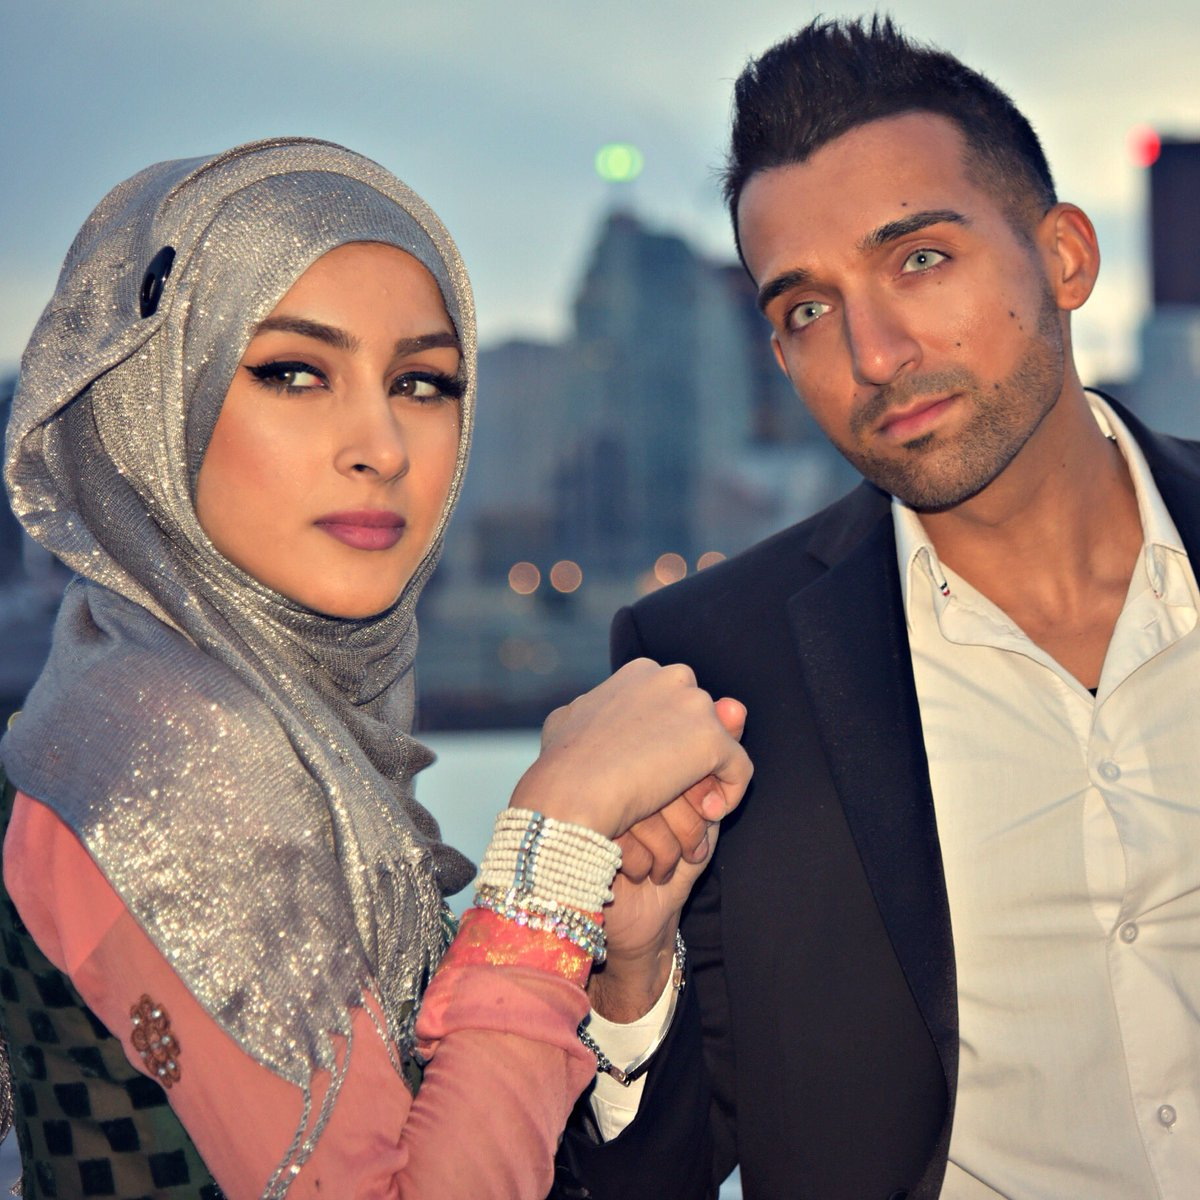 Sham Idrees On Twitter Jaana Is Already On Spotify 3 Days To Go For The Official Music Video It S The Title Song Of Our Drama Shampions